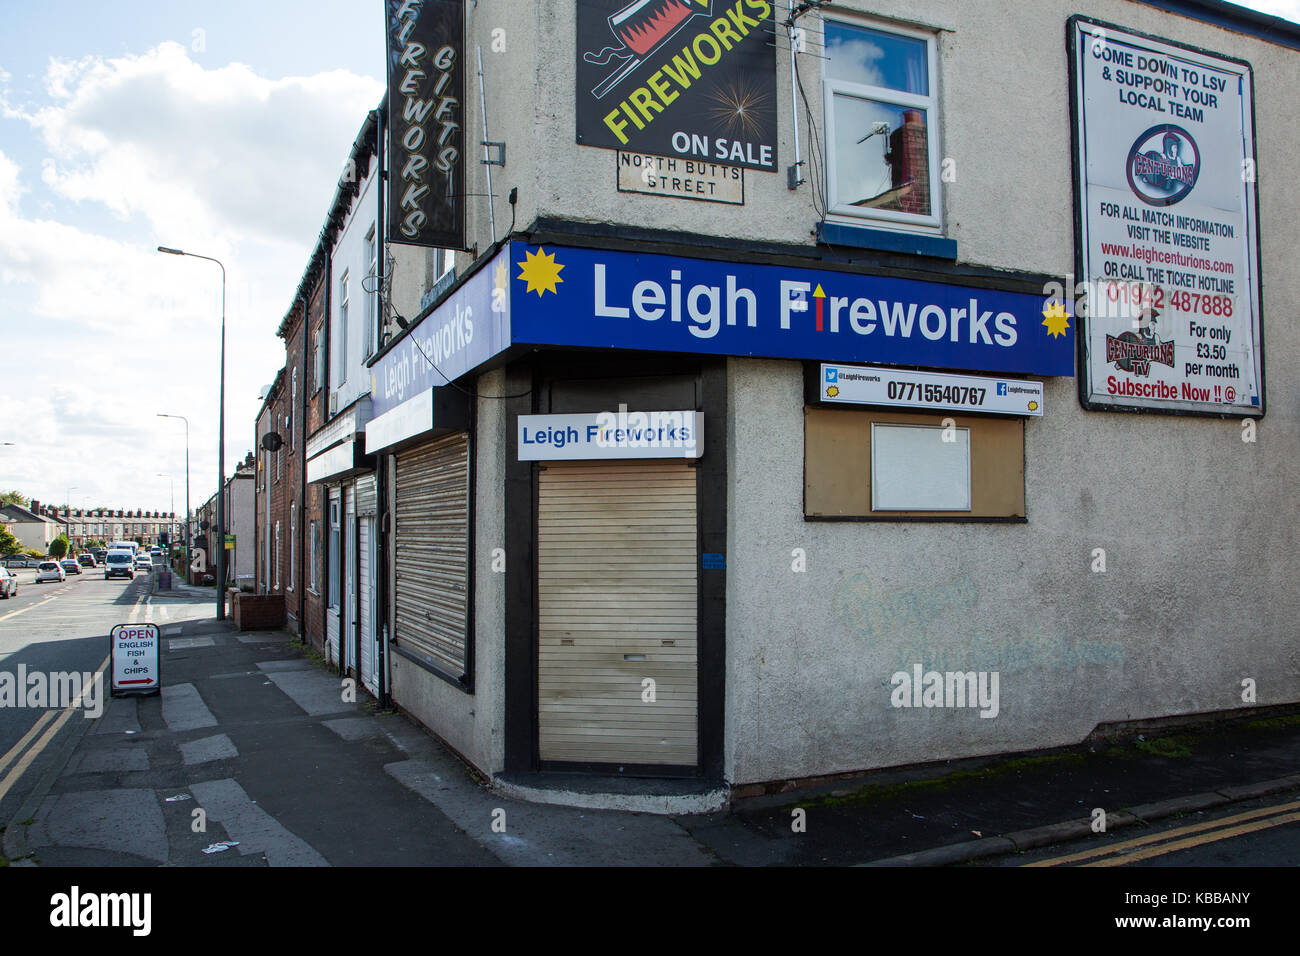 Leigh Fireworks shop In Leigh, England, UK - Stock Image